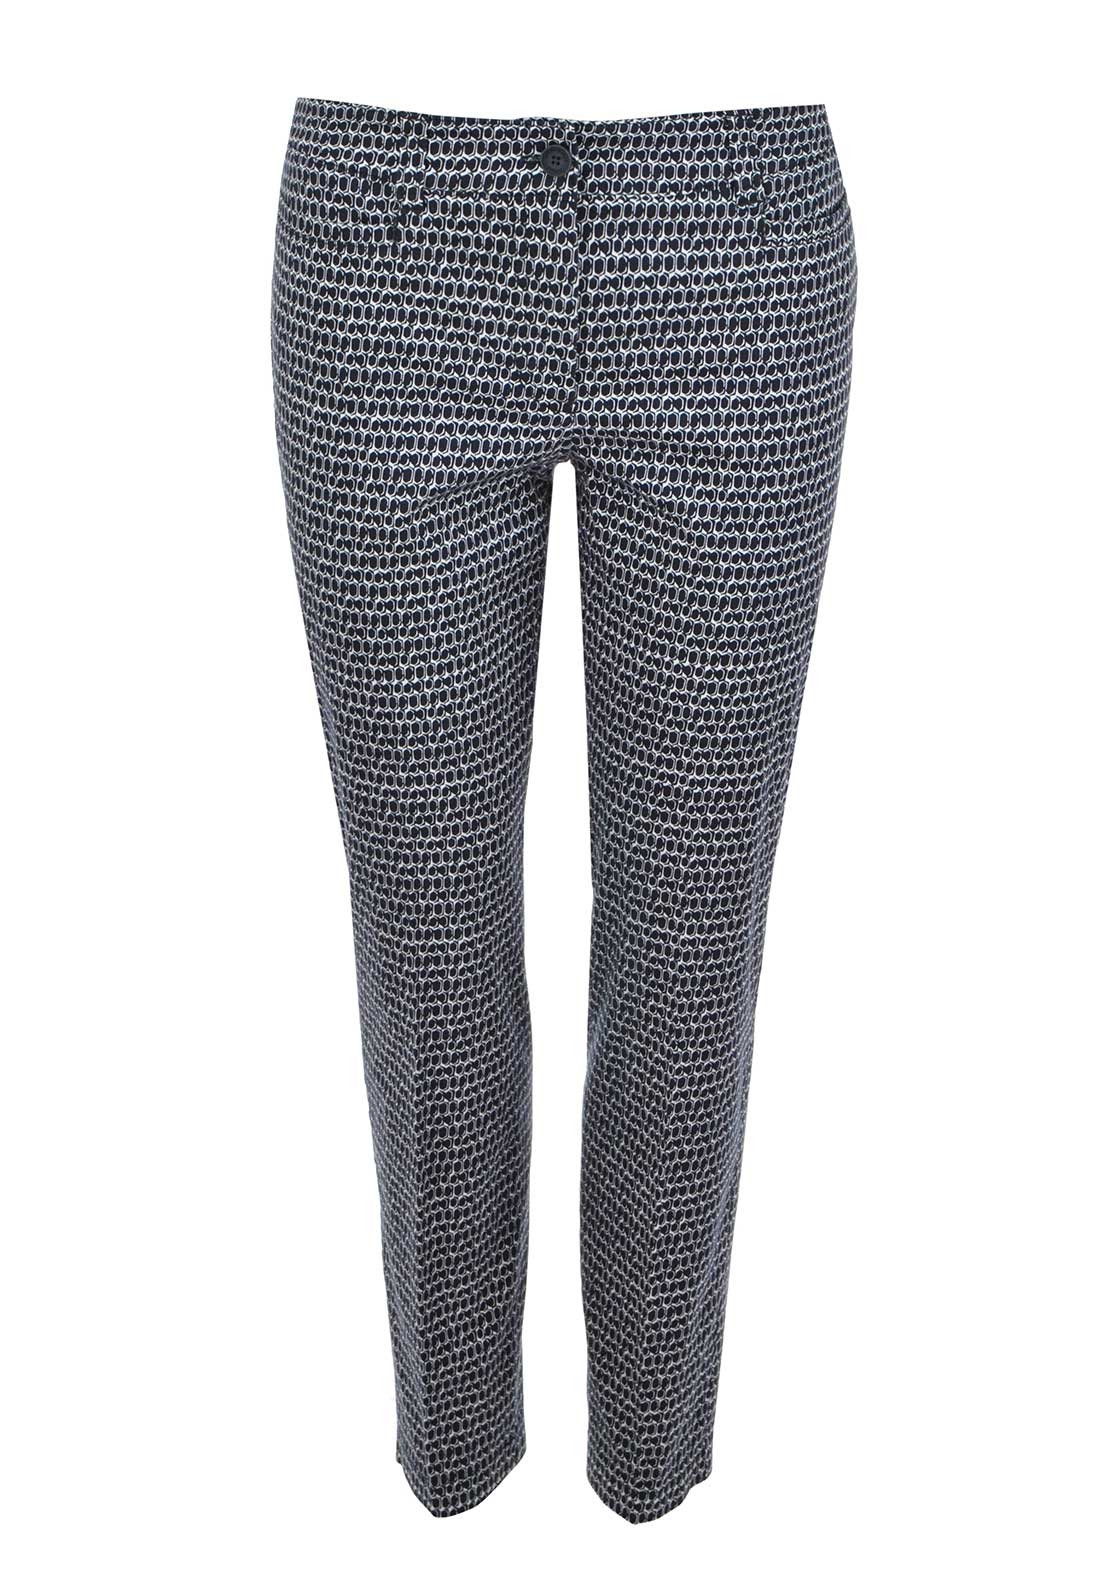 Gerry Weber Geometric Print Slim Leg Trousers, Navy